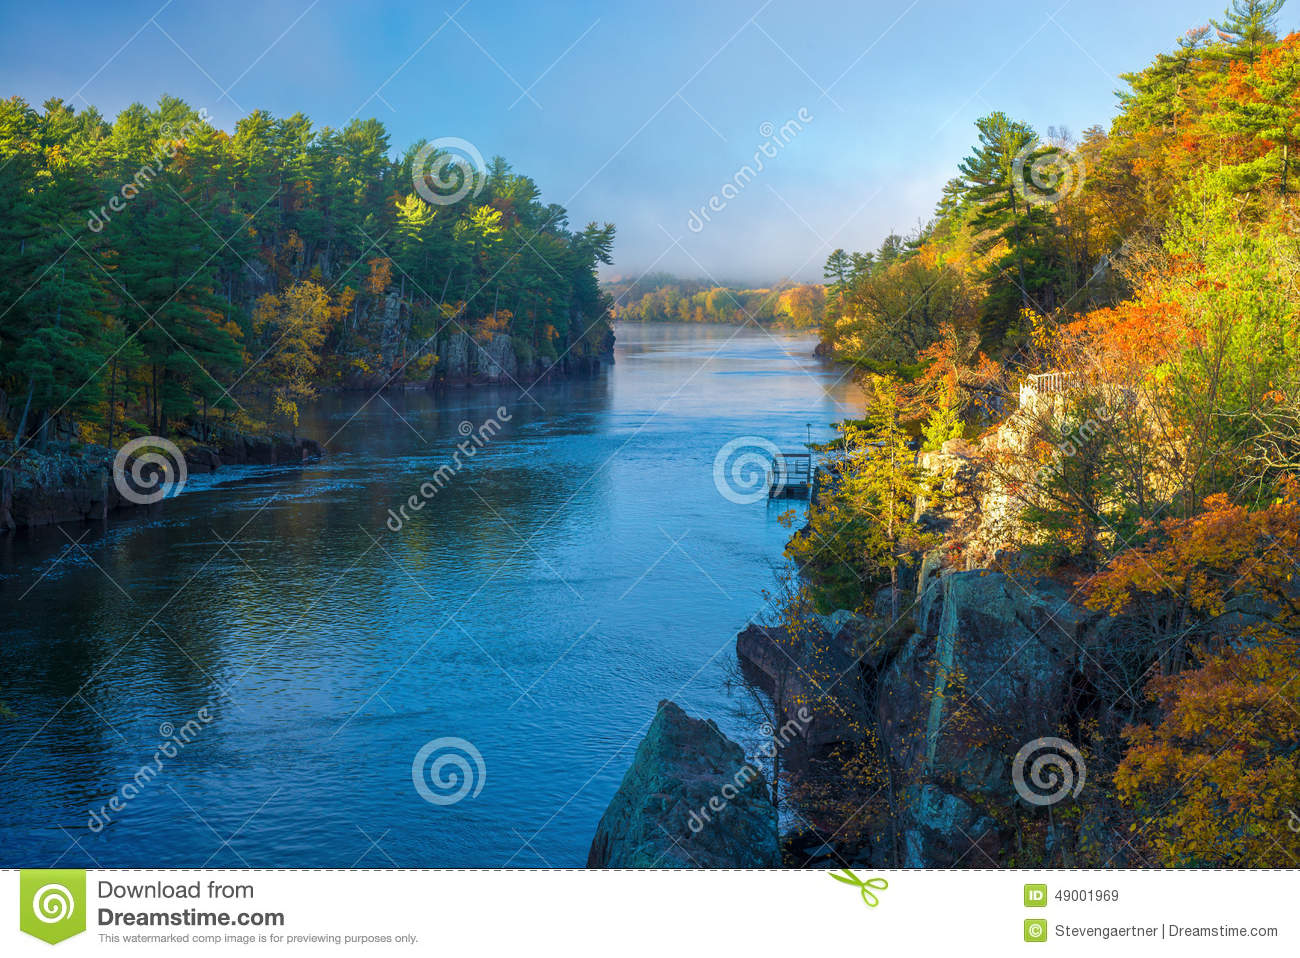 Home Water Filter >> Clearing Fog, St.croix River Royalty-Free Stock Photography | CartoonDealer.com #49001969